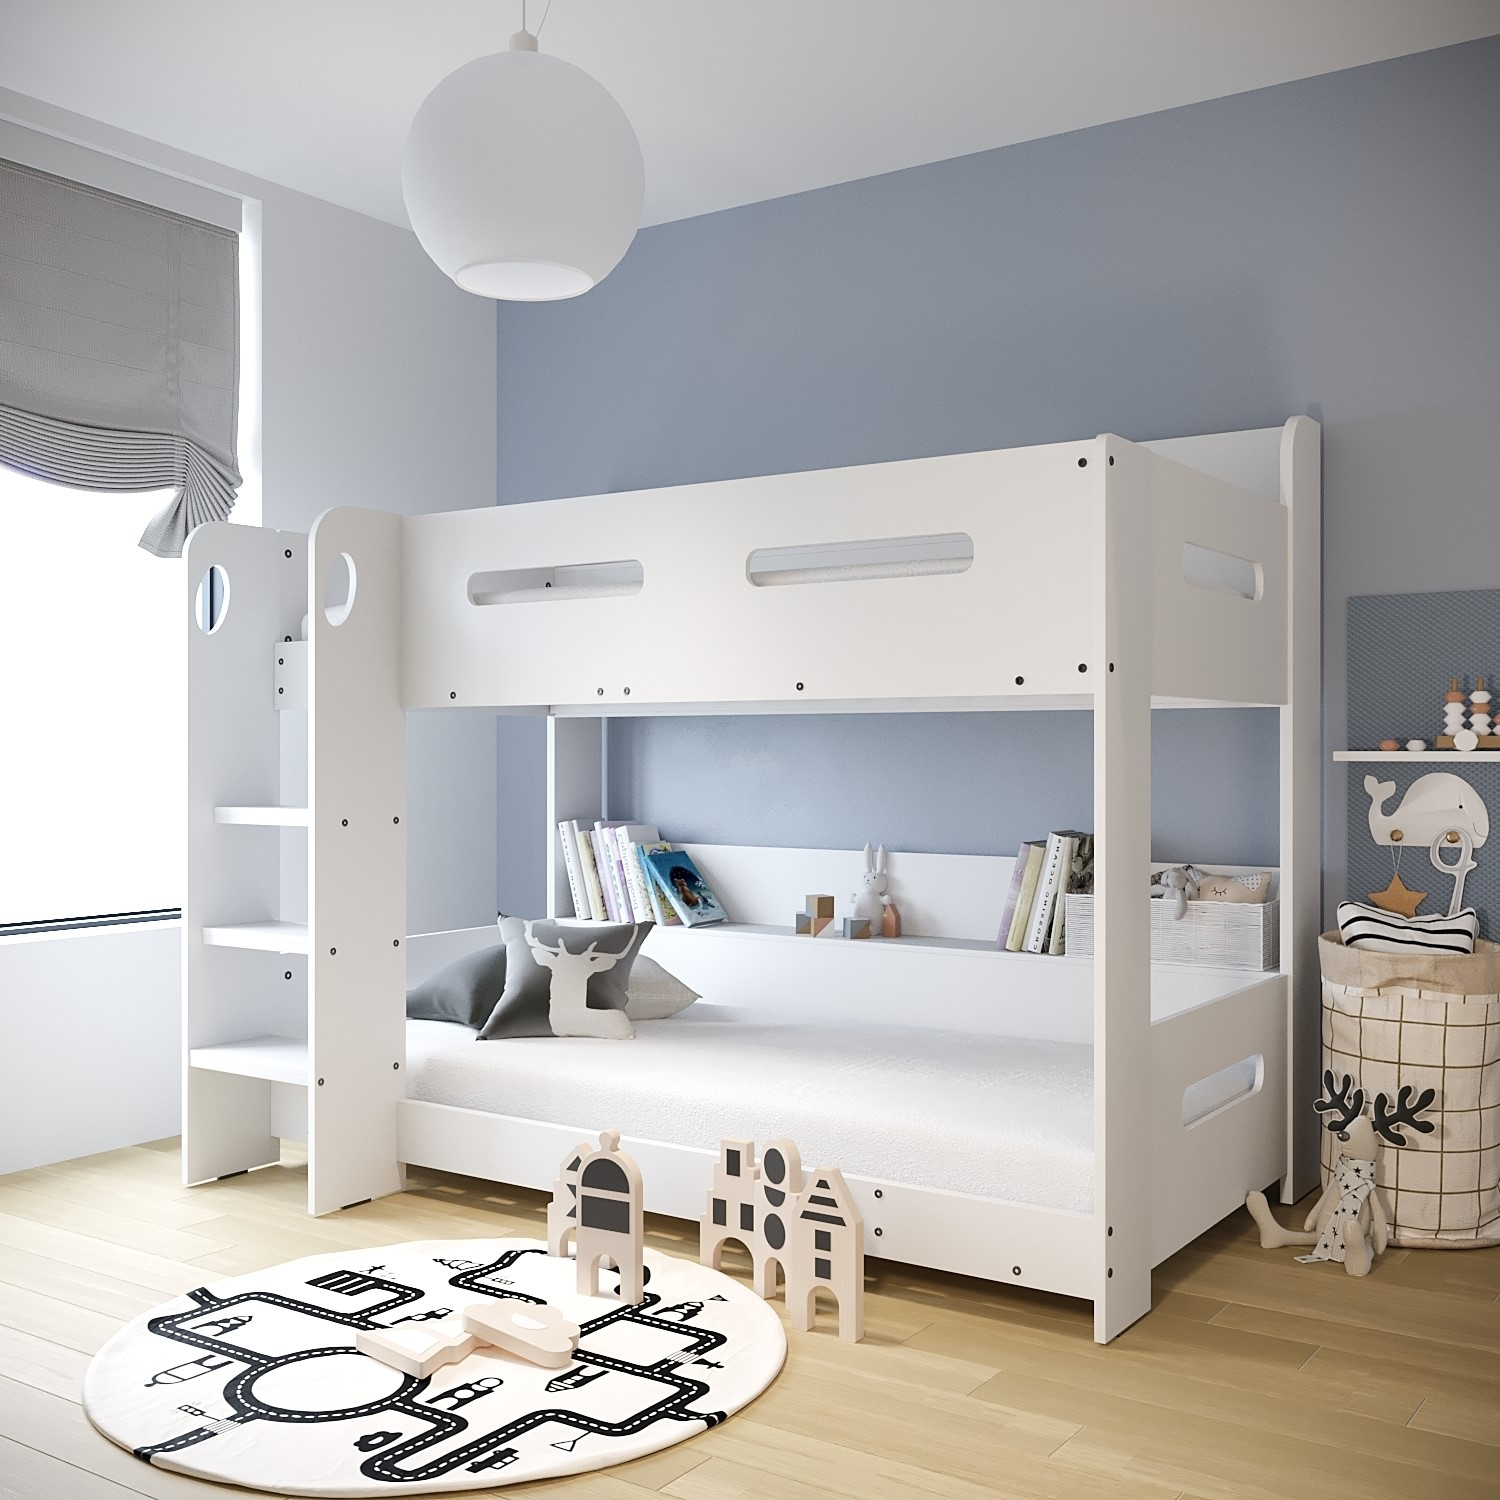 Details About Modern Kids White Wooden Bunk Bed Storage Shelves